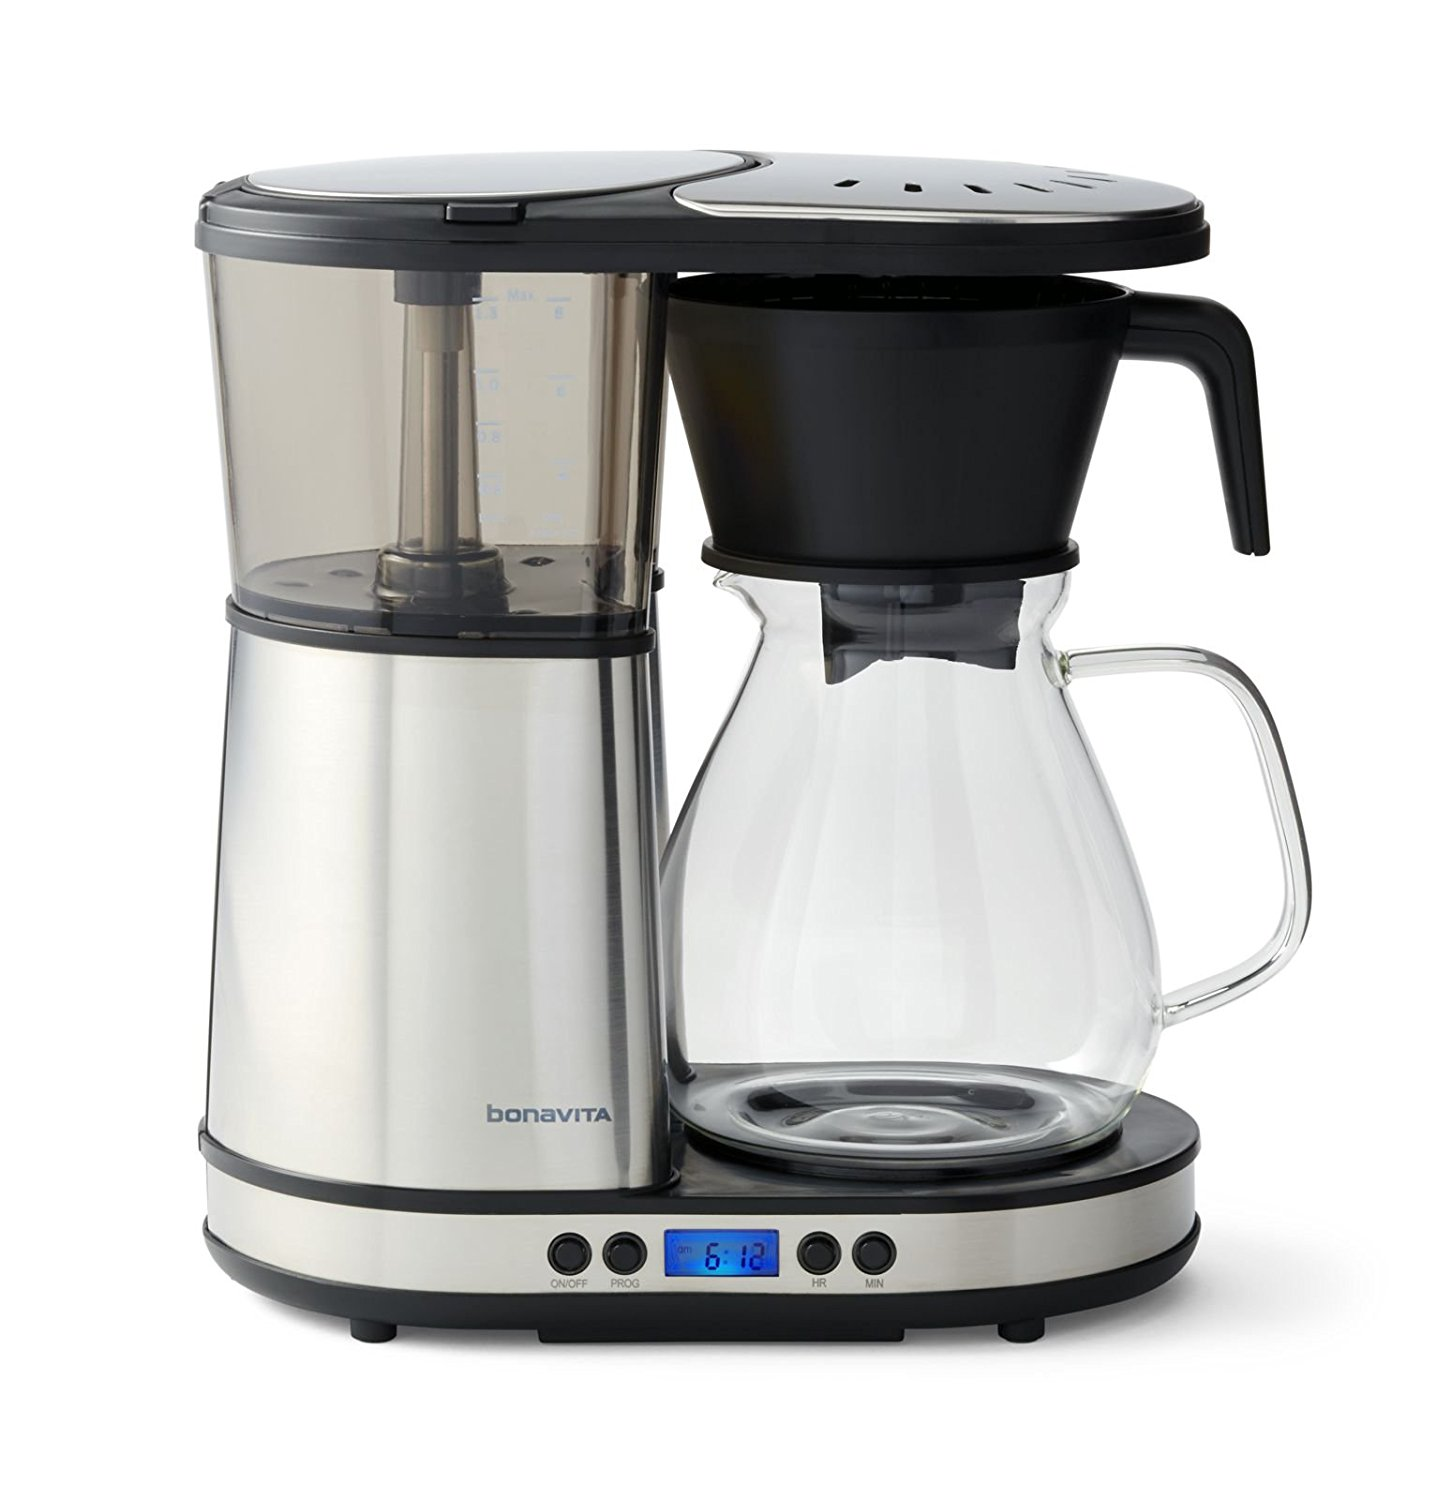 Bonavita Bv1902dw 8 Cup Digital Coffee Maker With Glass